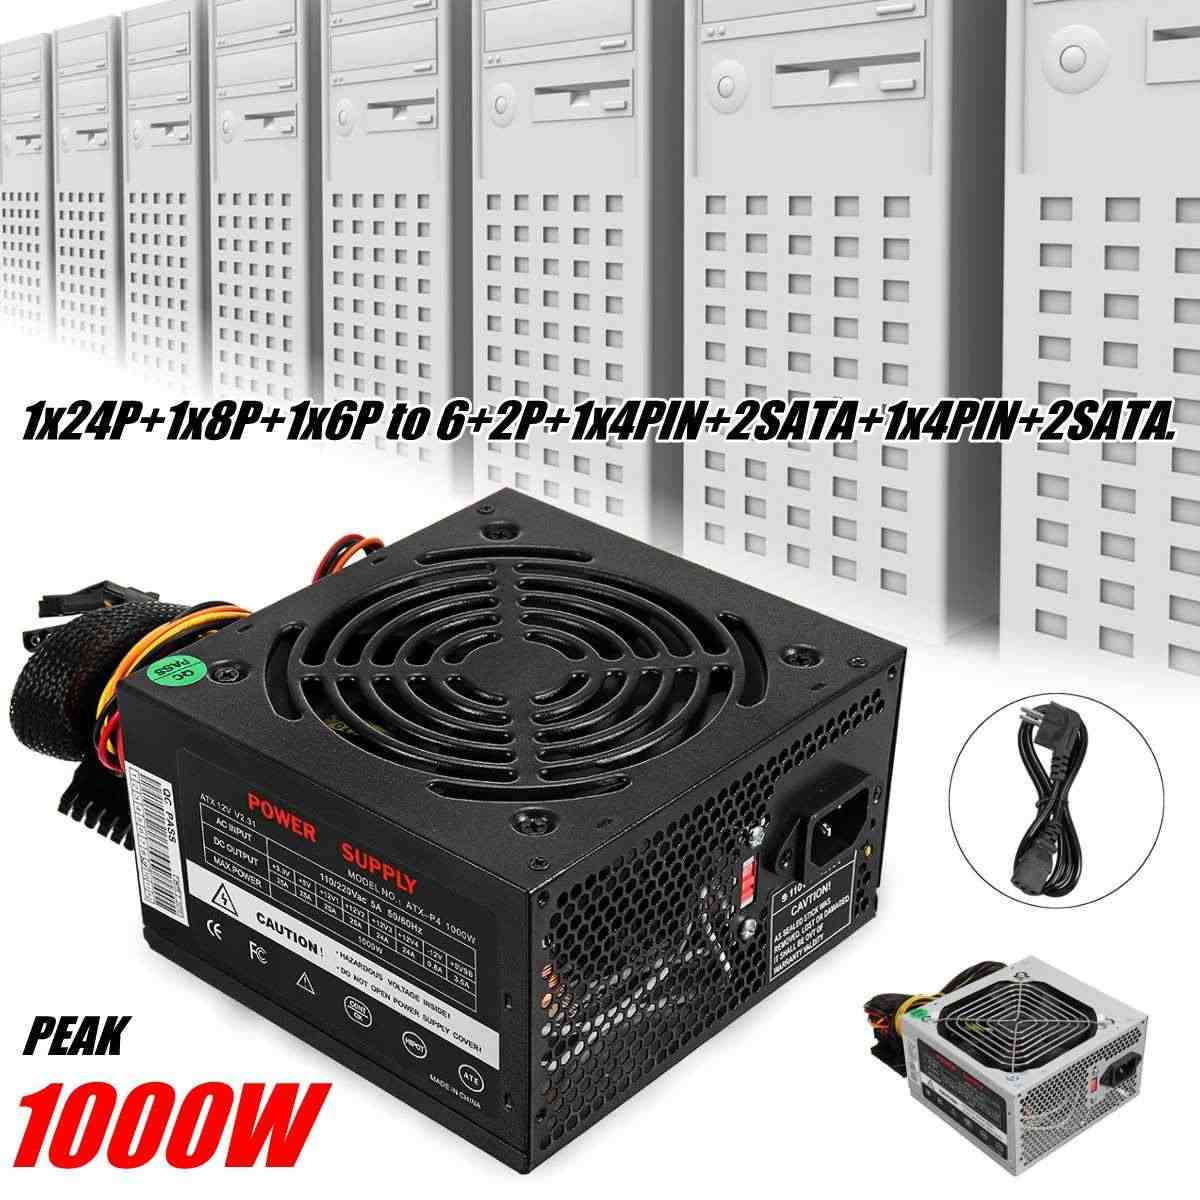 1000W Power Supply PSU PFC Silent Fan ATX 24pin 12V PC Computer SATA Gaming PC Power Supply For Intel AMD Computer